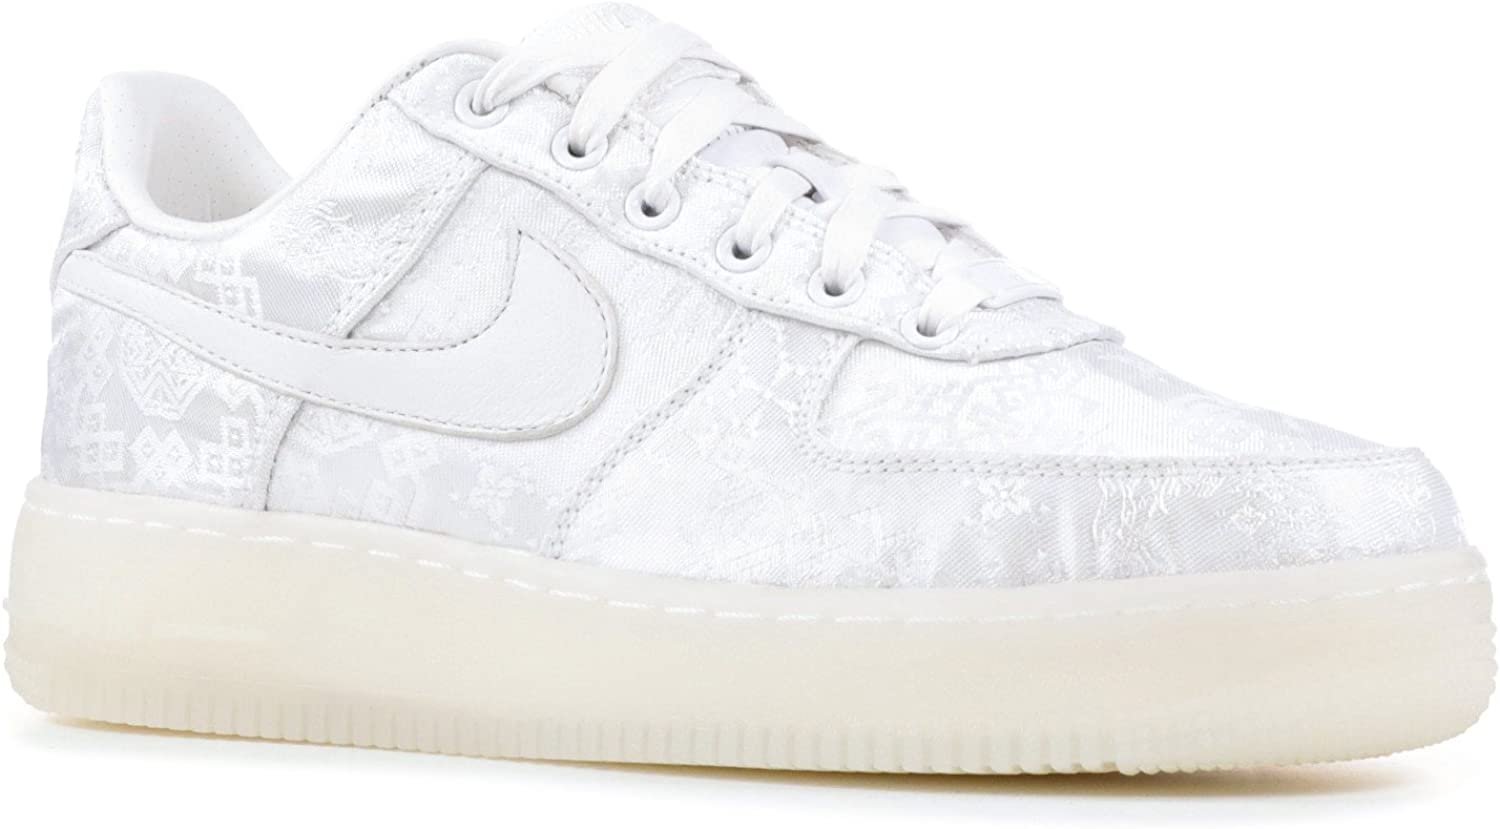 Nike Air Force 1 PRM Clot - US 8.5: Amazon.es: Zapatos y complementos